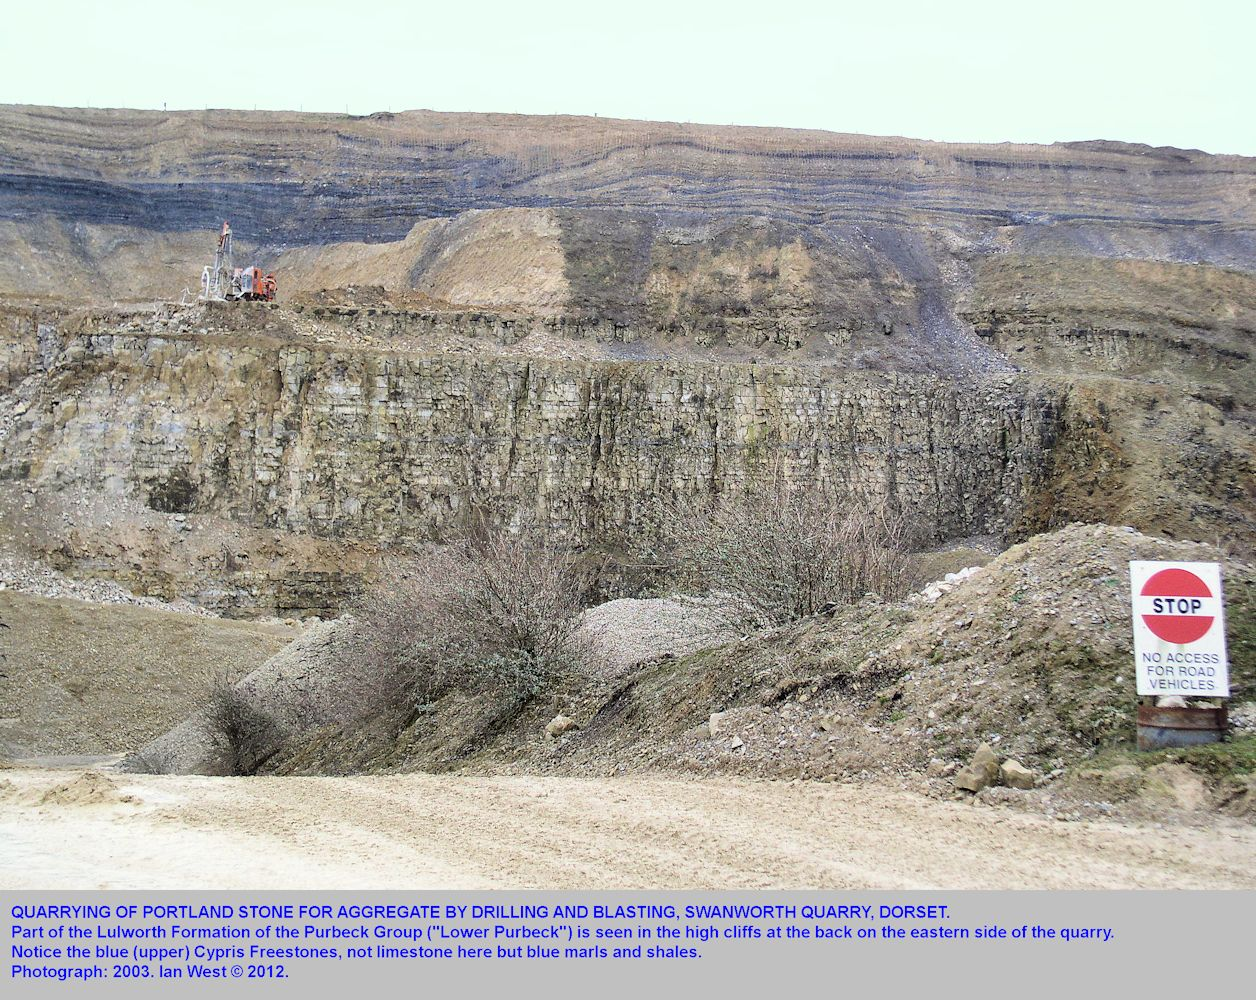 Quarrying of Portland Stone in Swanworth Quarry, looking towards the eastern Purbeck cliff face, 2003